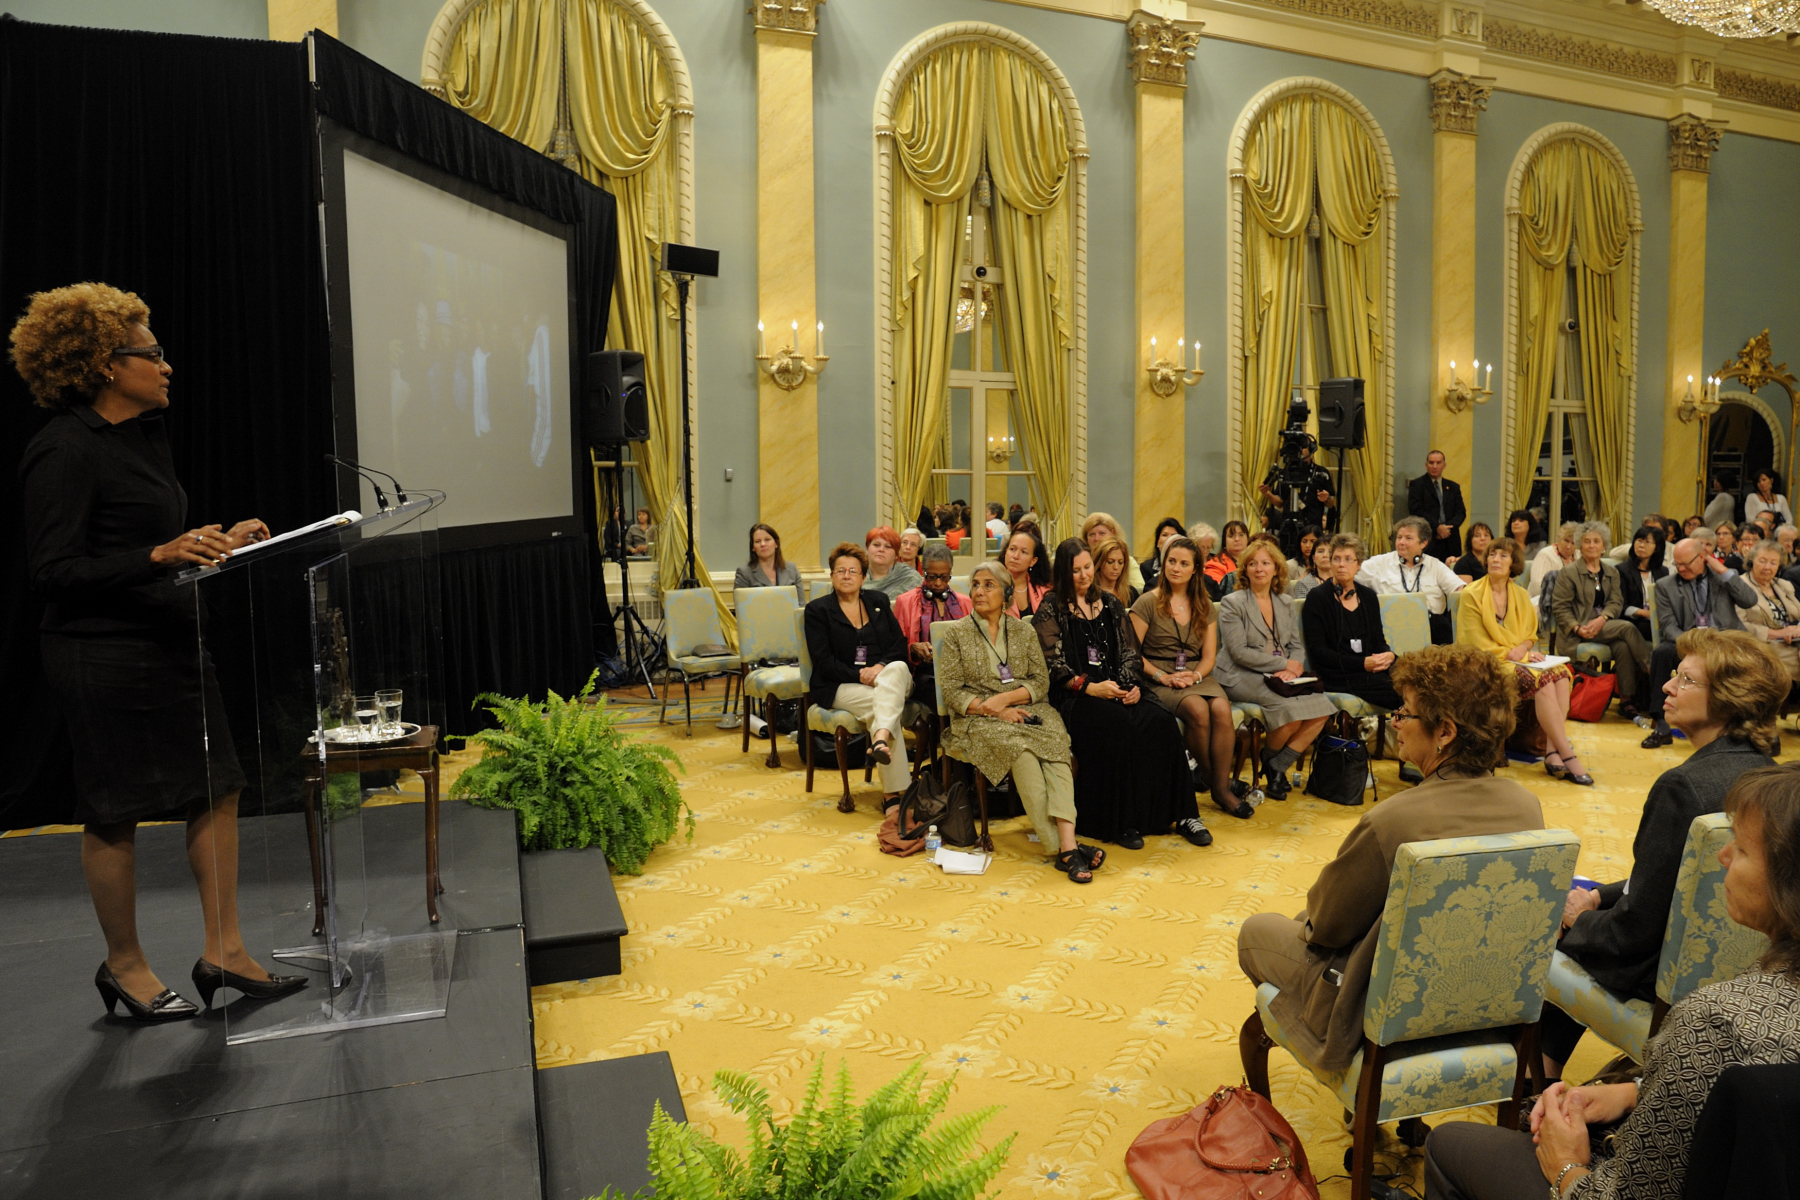 The Governor General ended these incredible two days by sharing her impressions on what she heard.